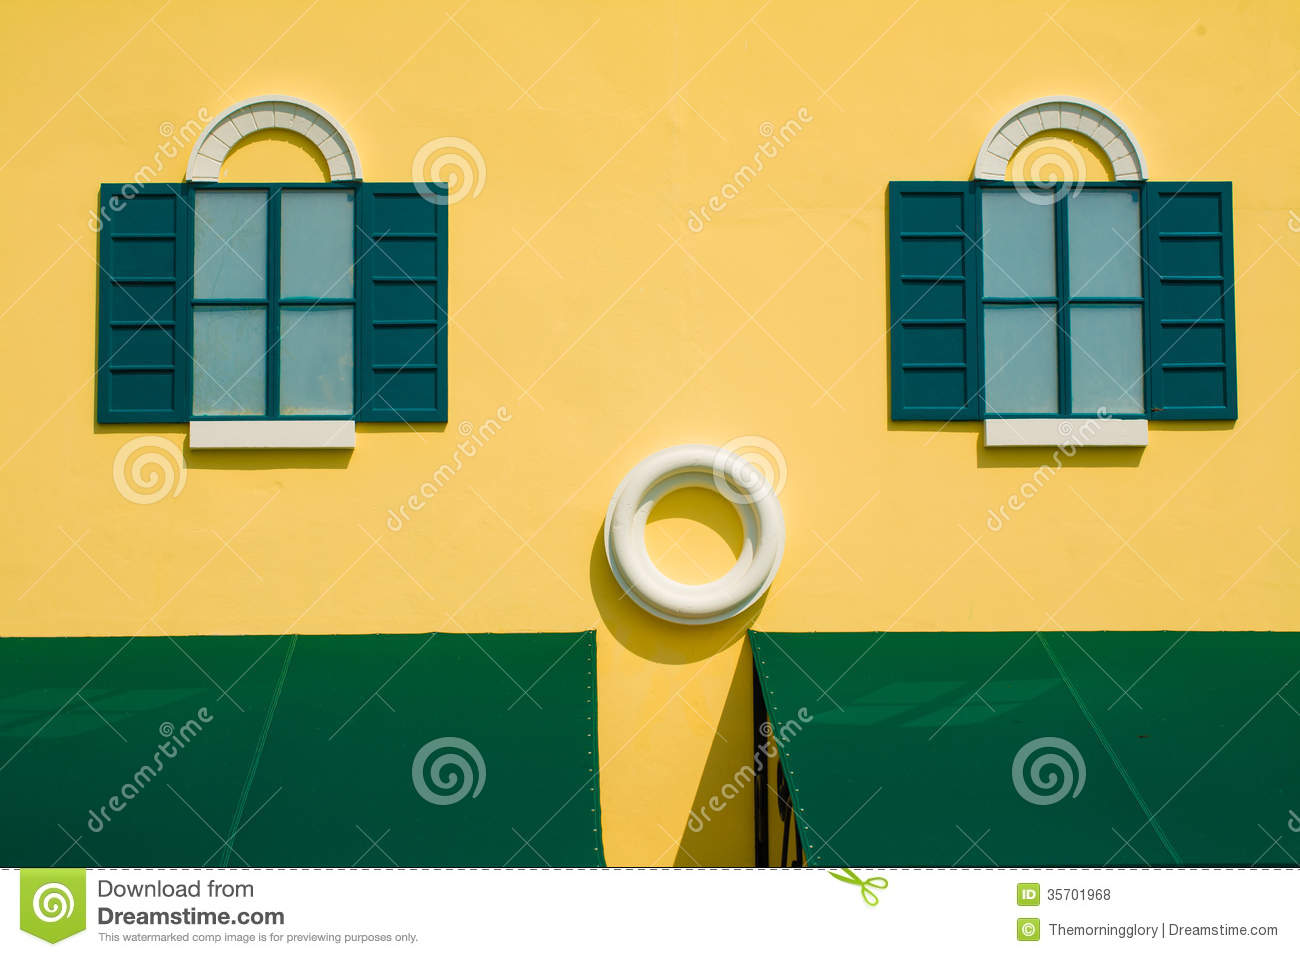 Green Shutters On Yellow Wall Stock Photo - Image of colorful ...